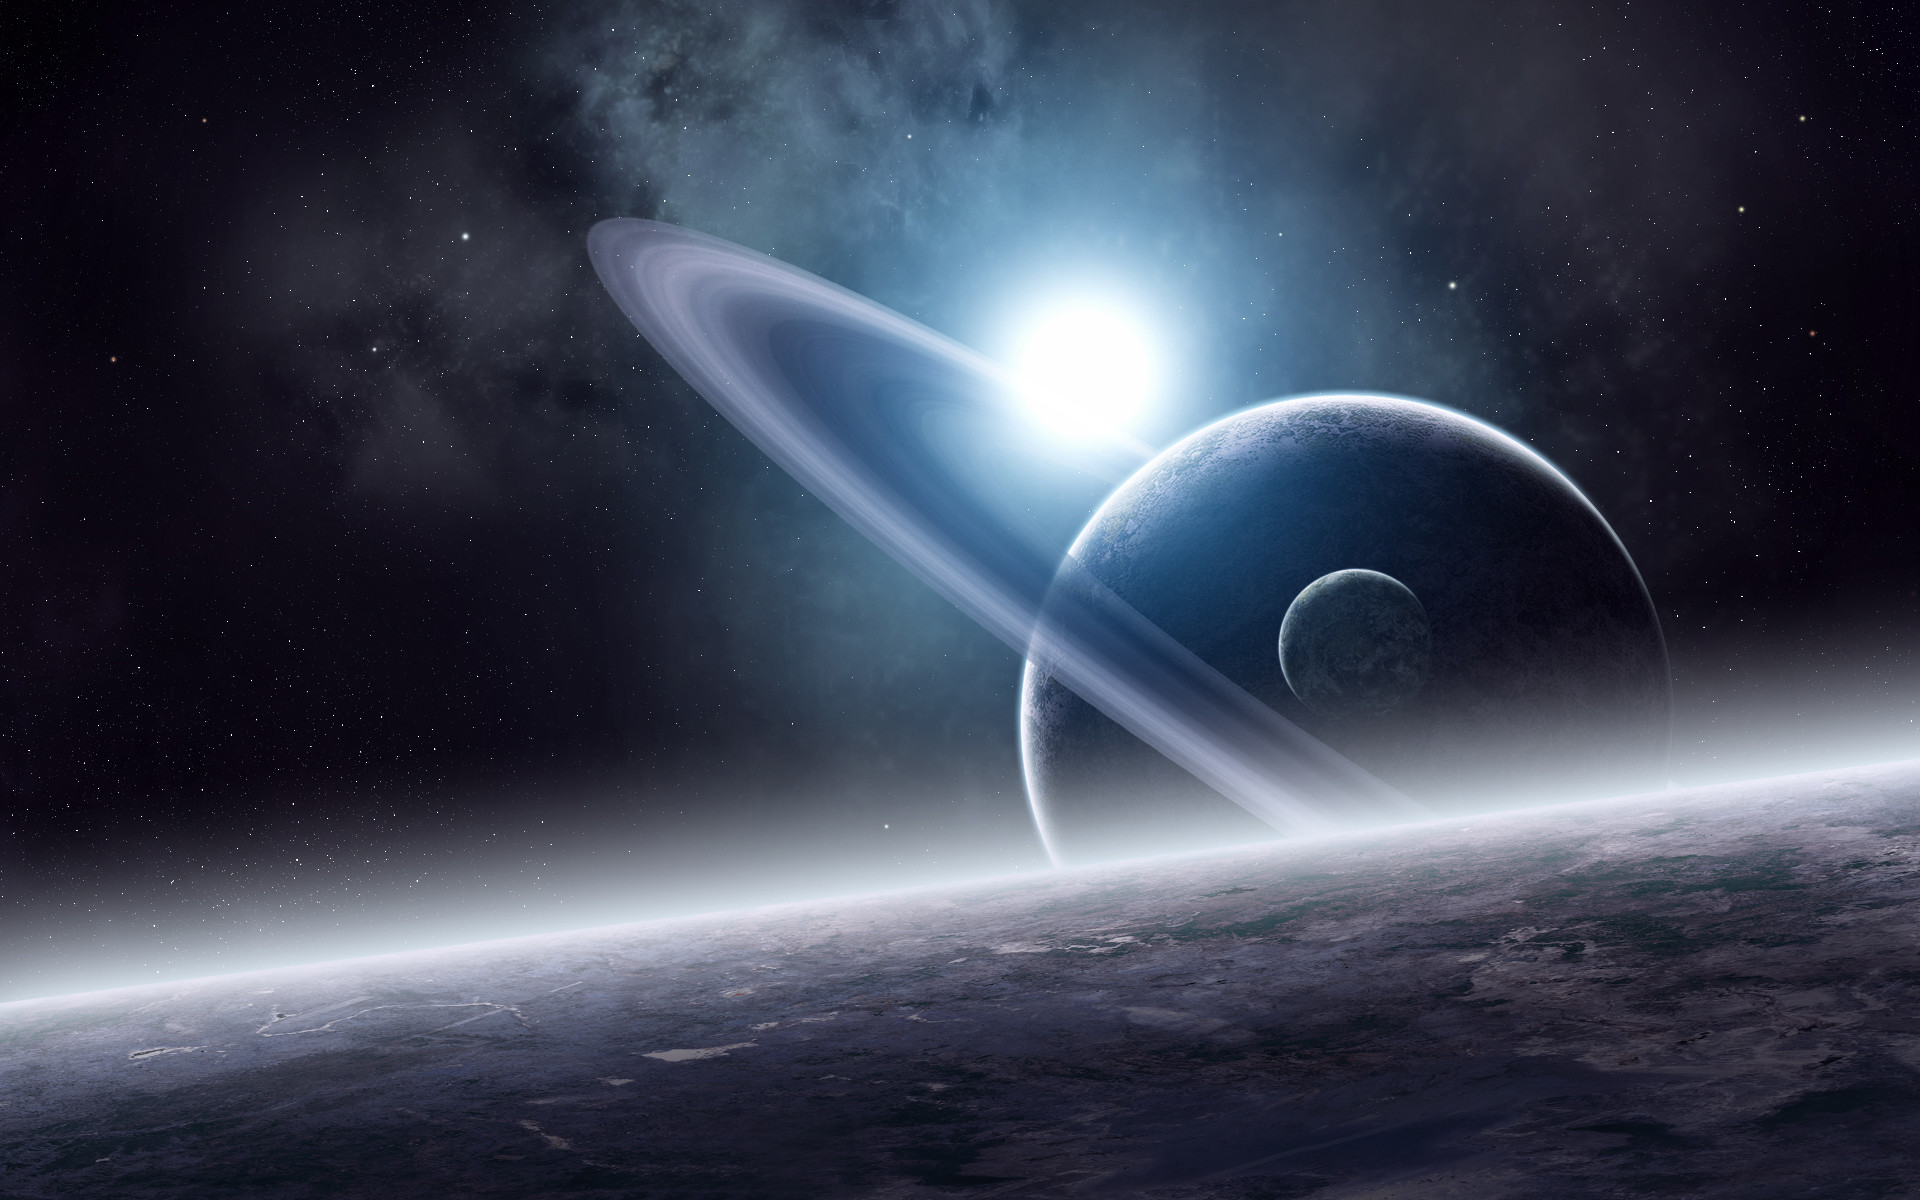 Astronomy desktop backgrounds 59 images - Top space wallpapers ...